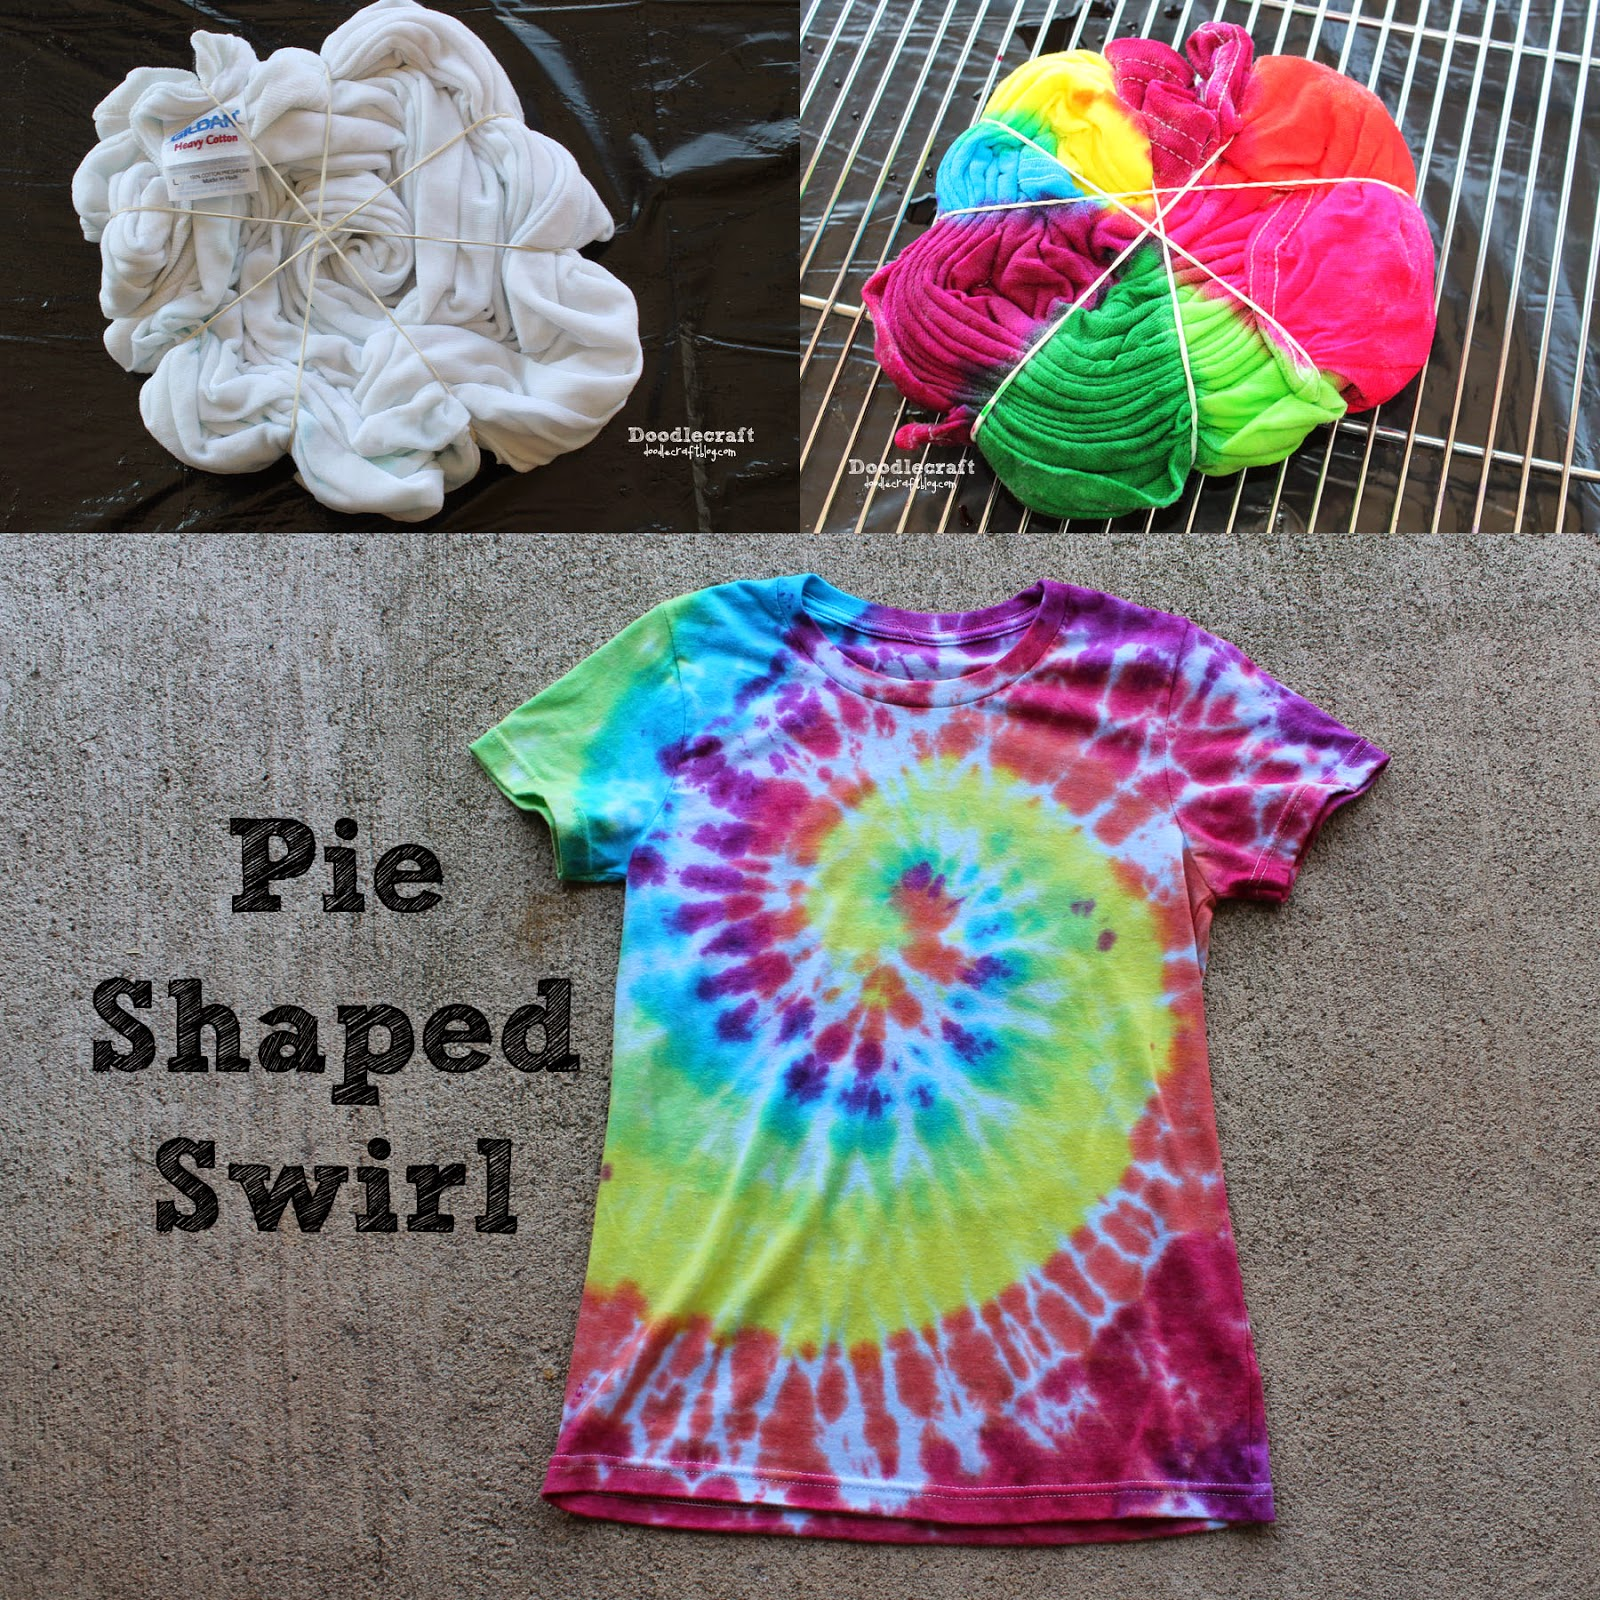 doodlecraft tulip tie dye t shirt party. Black Bedroom Furniture Sets. Home Design Ideas